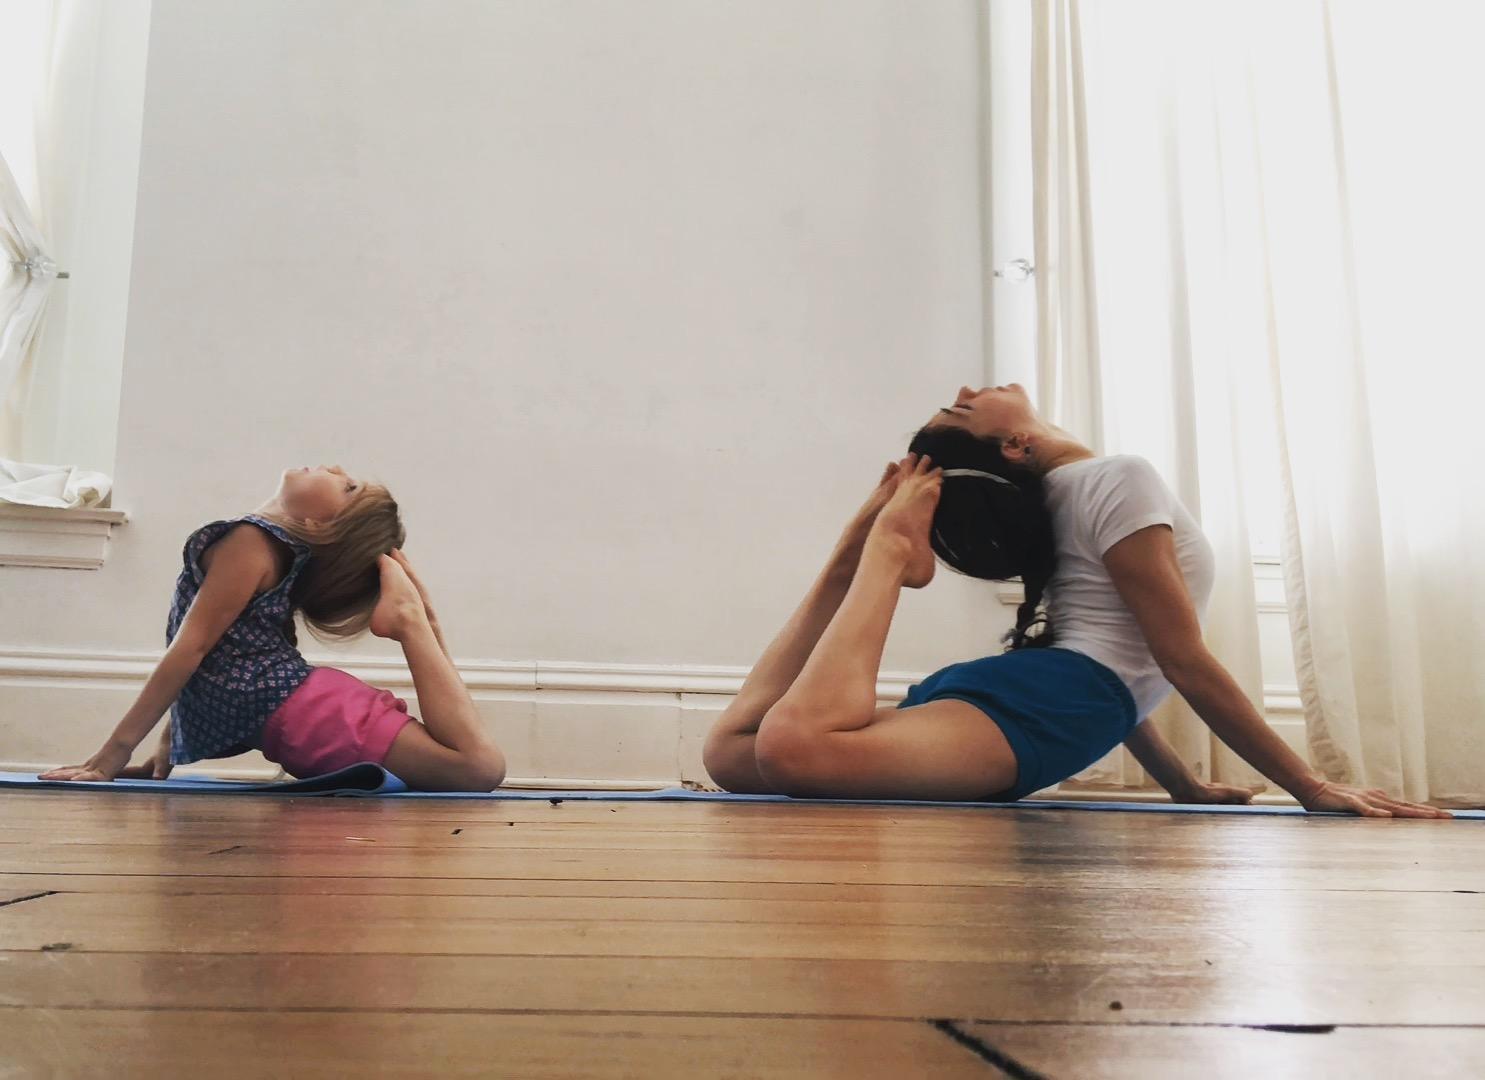 mother & daughter practicing Rajakapostasana. Who is teaching who?